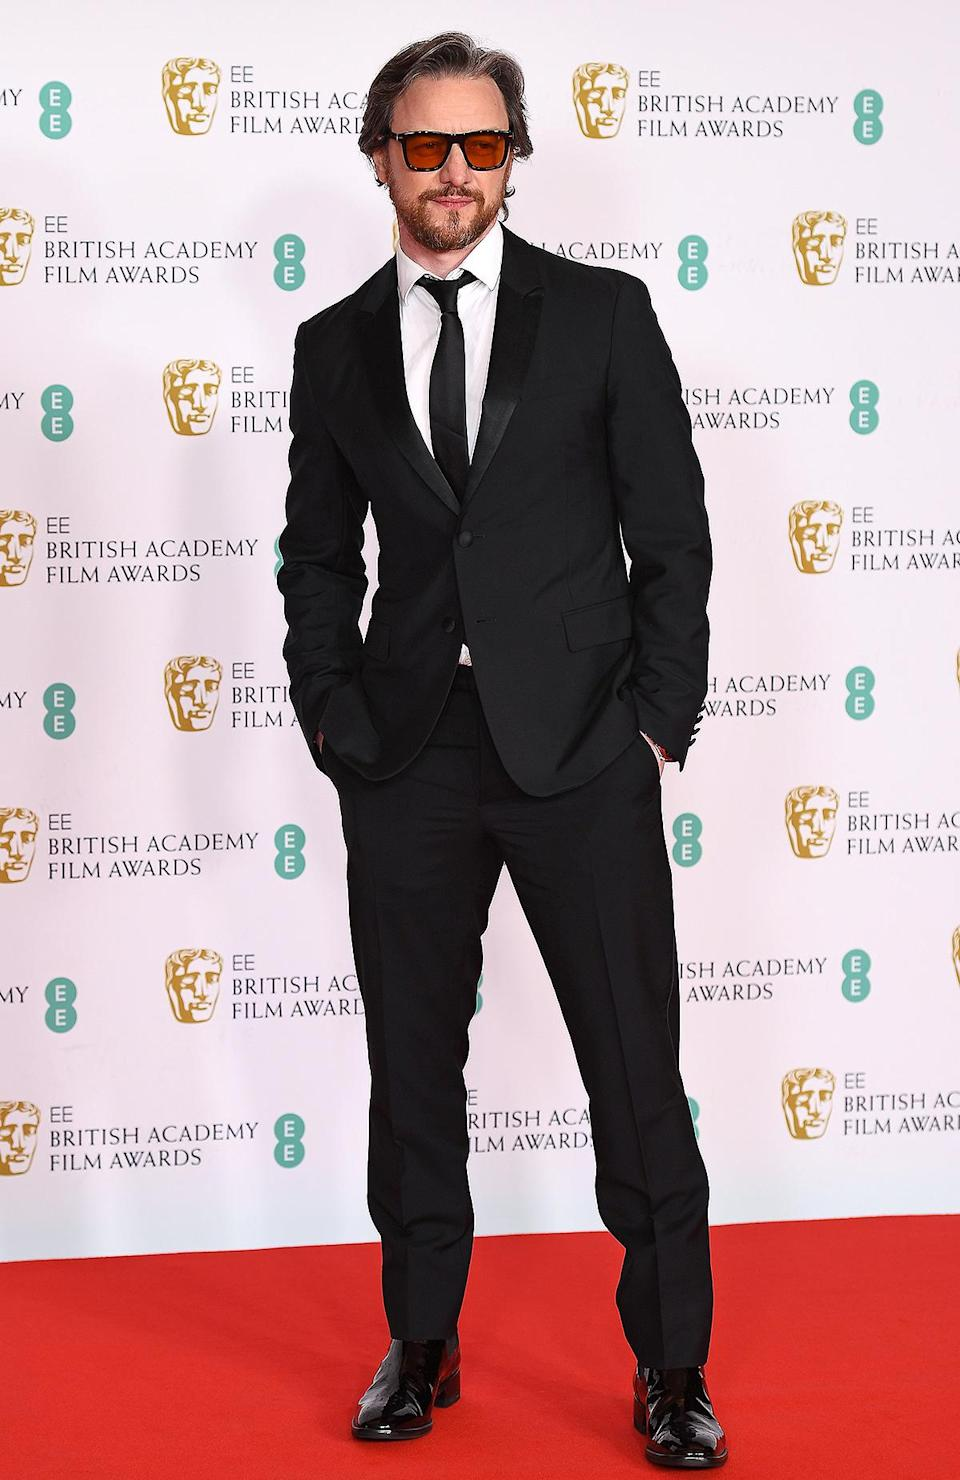 <p>pairs his classic black suit and tie with a pair of sunglasses from Eyewear by David Beckham. </p>